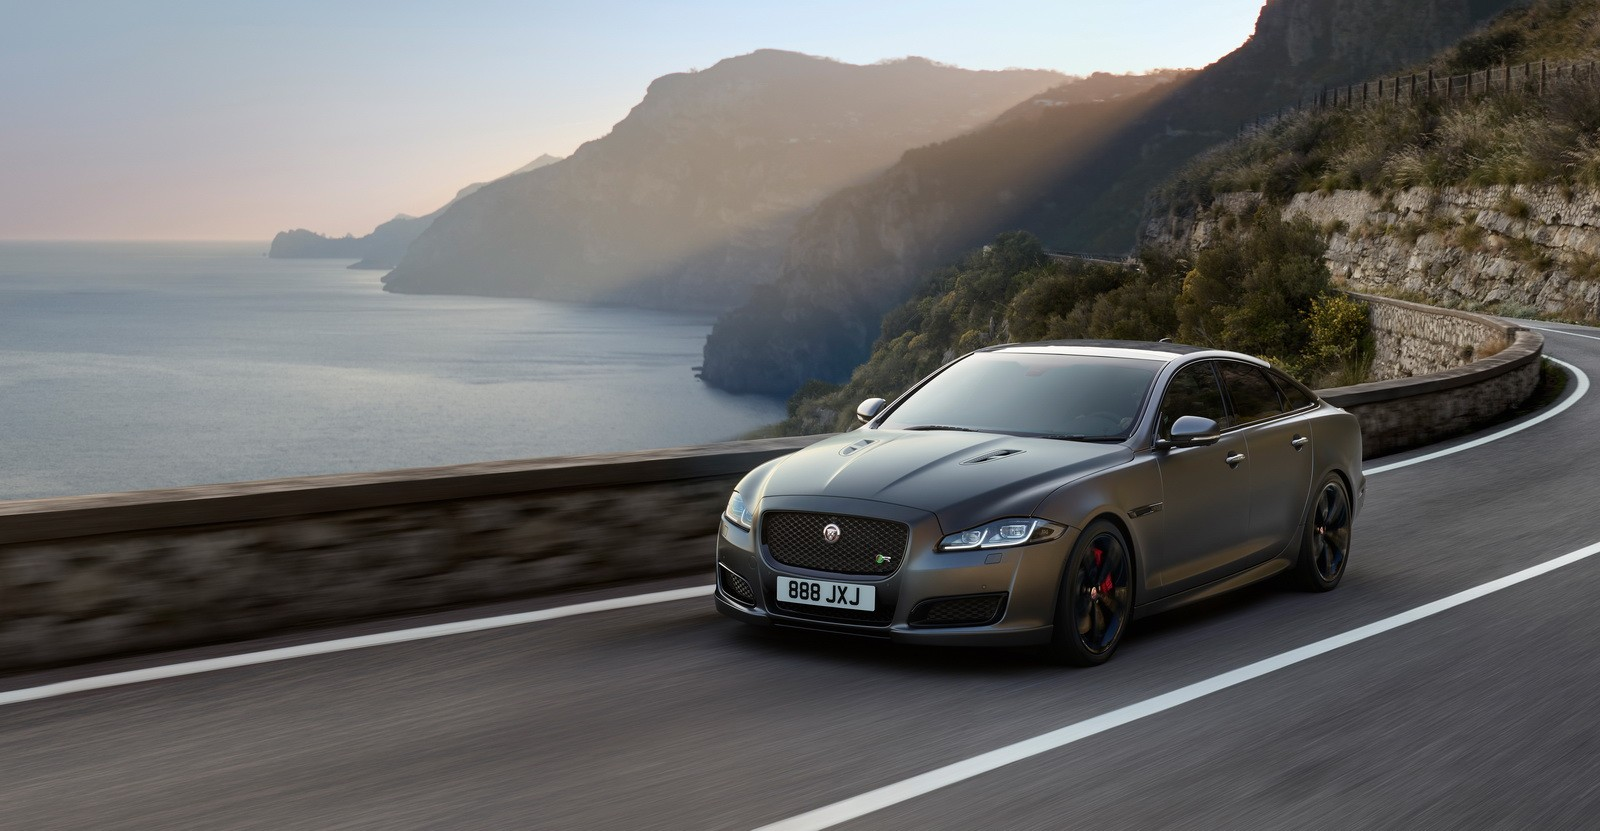 All Types 2016 xj : Jaguar XJ Replacement Coming in 2016, May Be Closer to S-Class ...